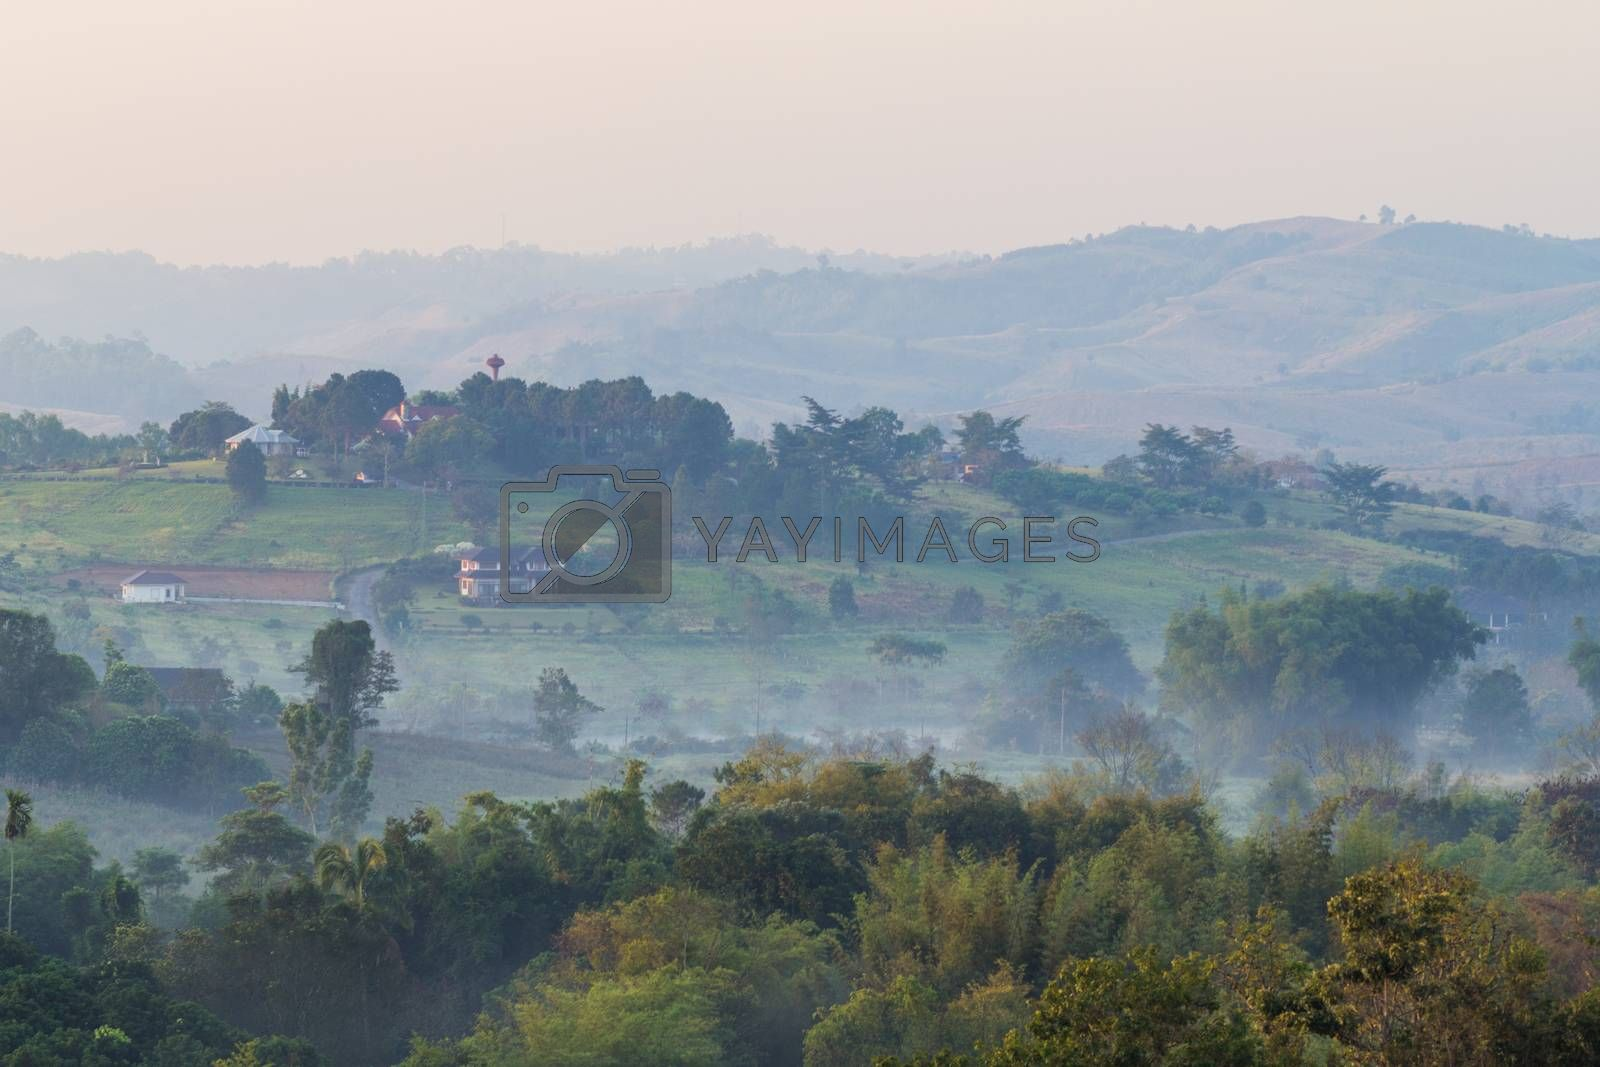 Royalty free image of home in mountains by kritsada1992